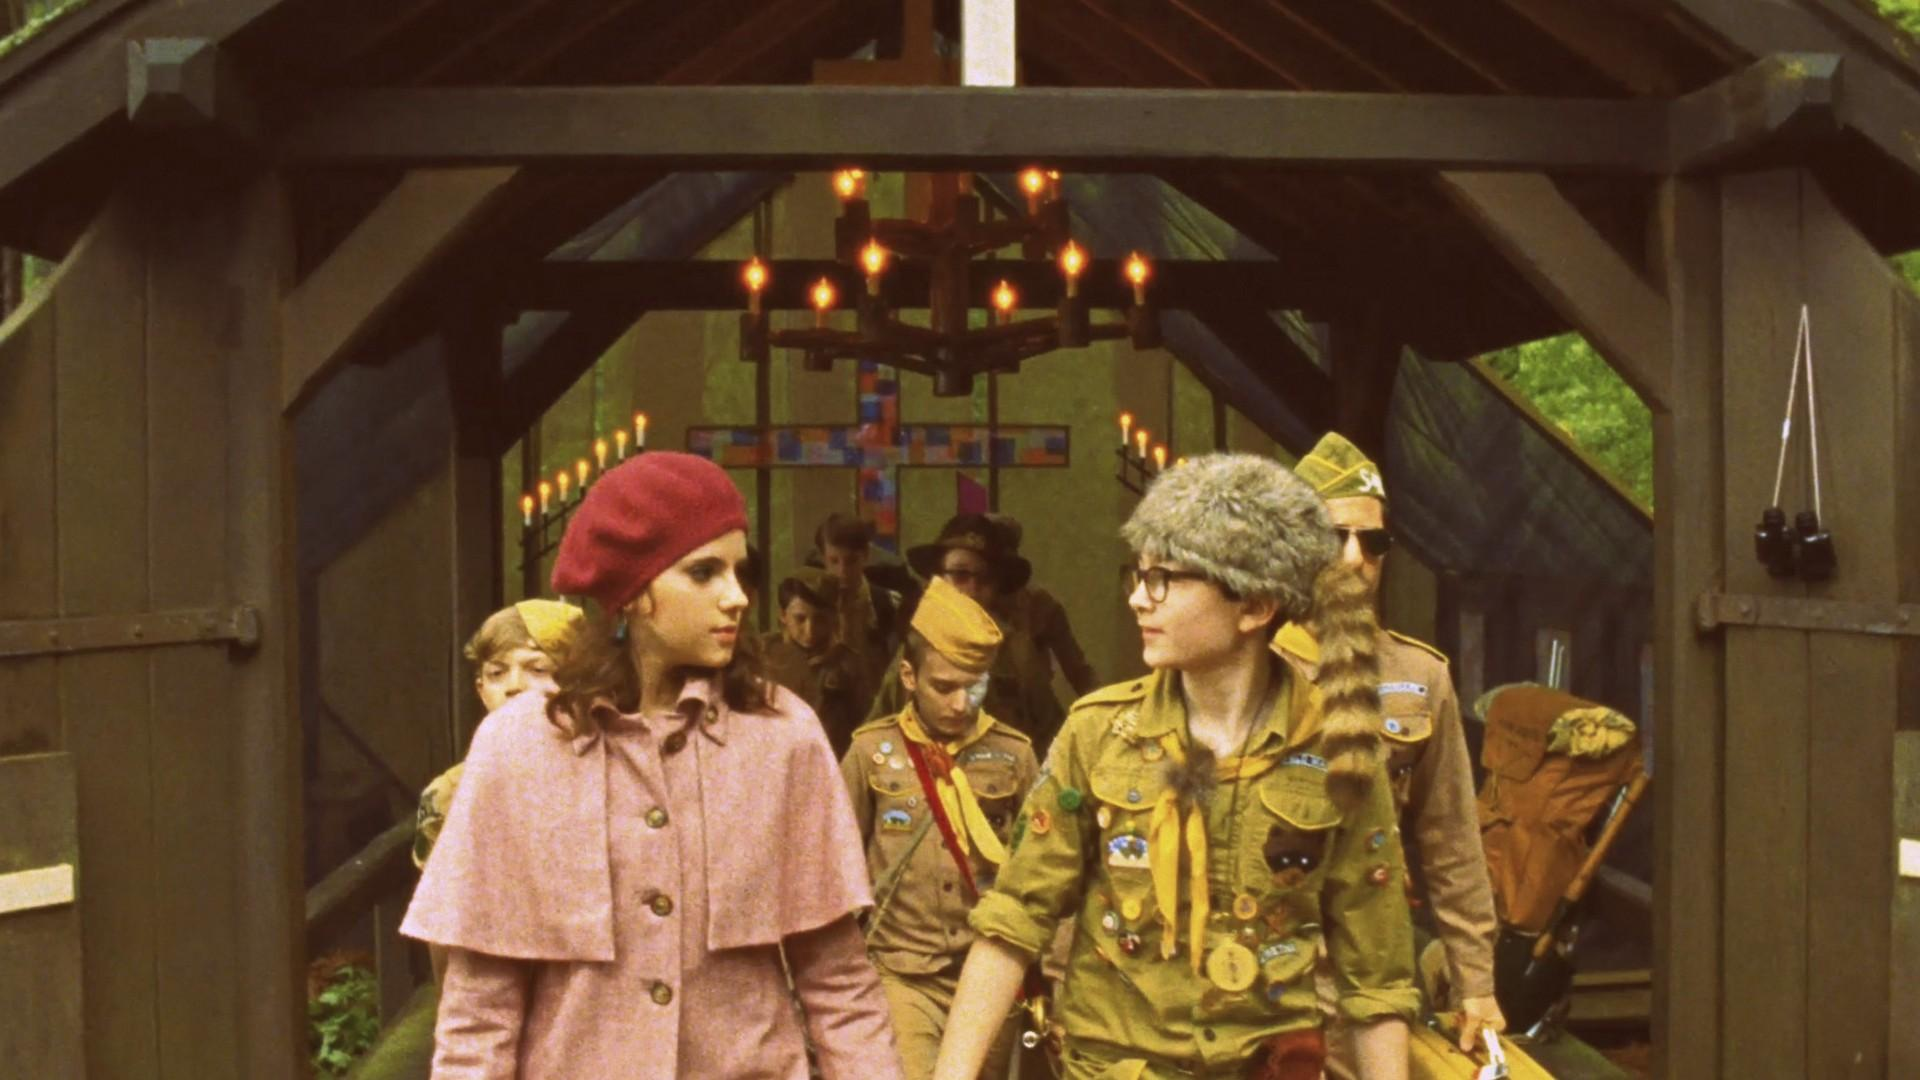 Retromantisch Wes Anderson Moonrise Kingdom Suzy Bishop pink coat red baret